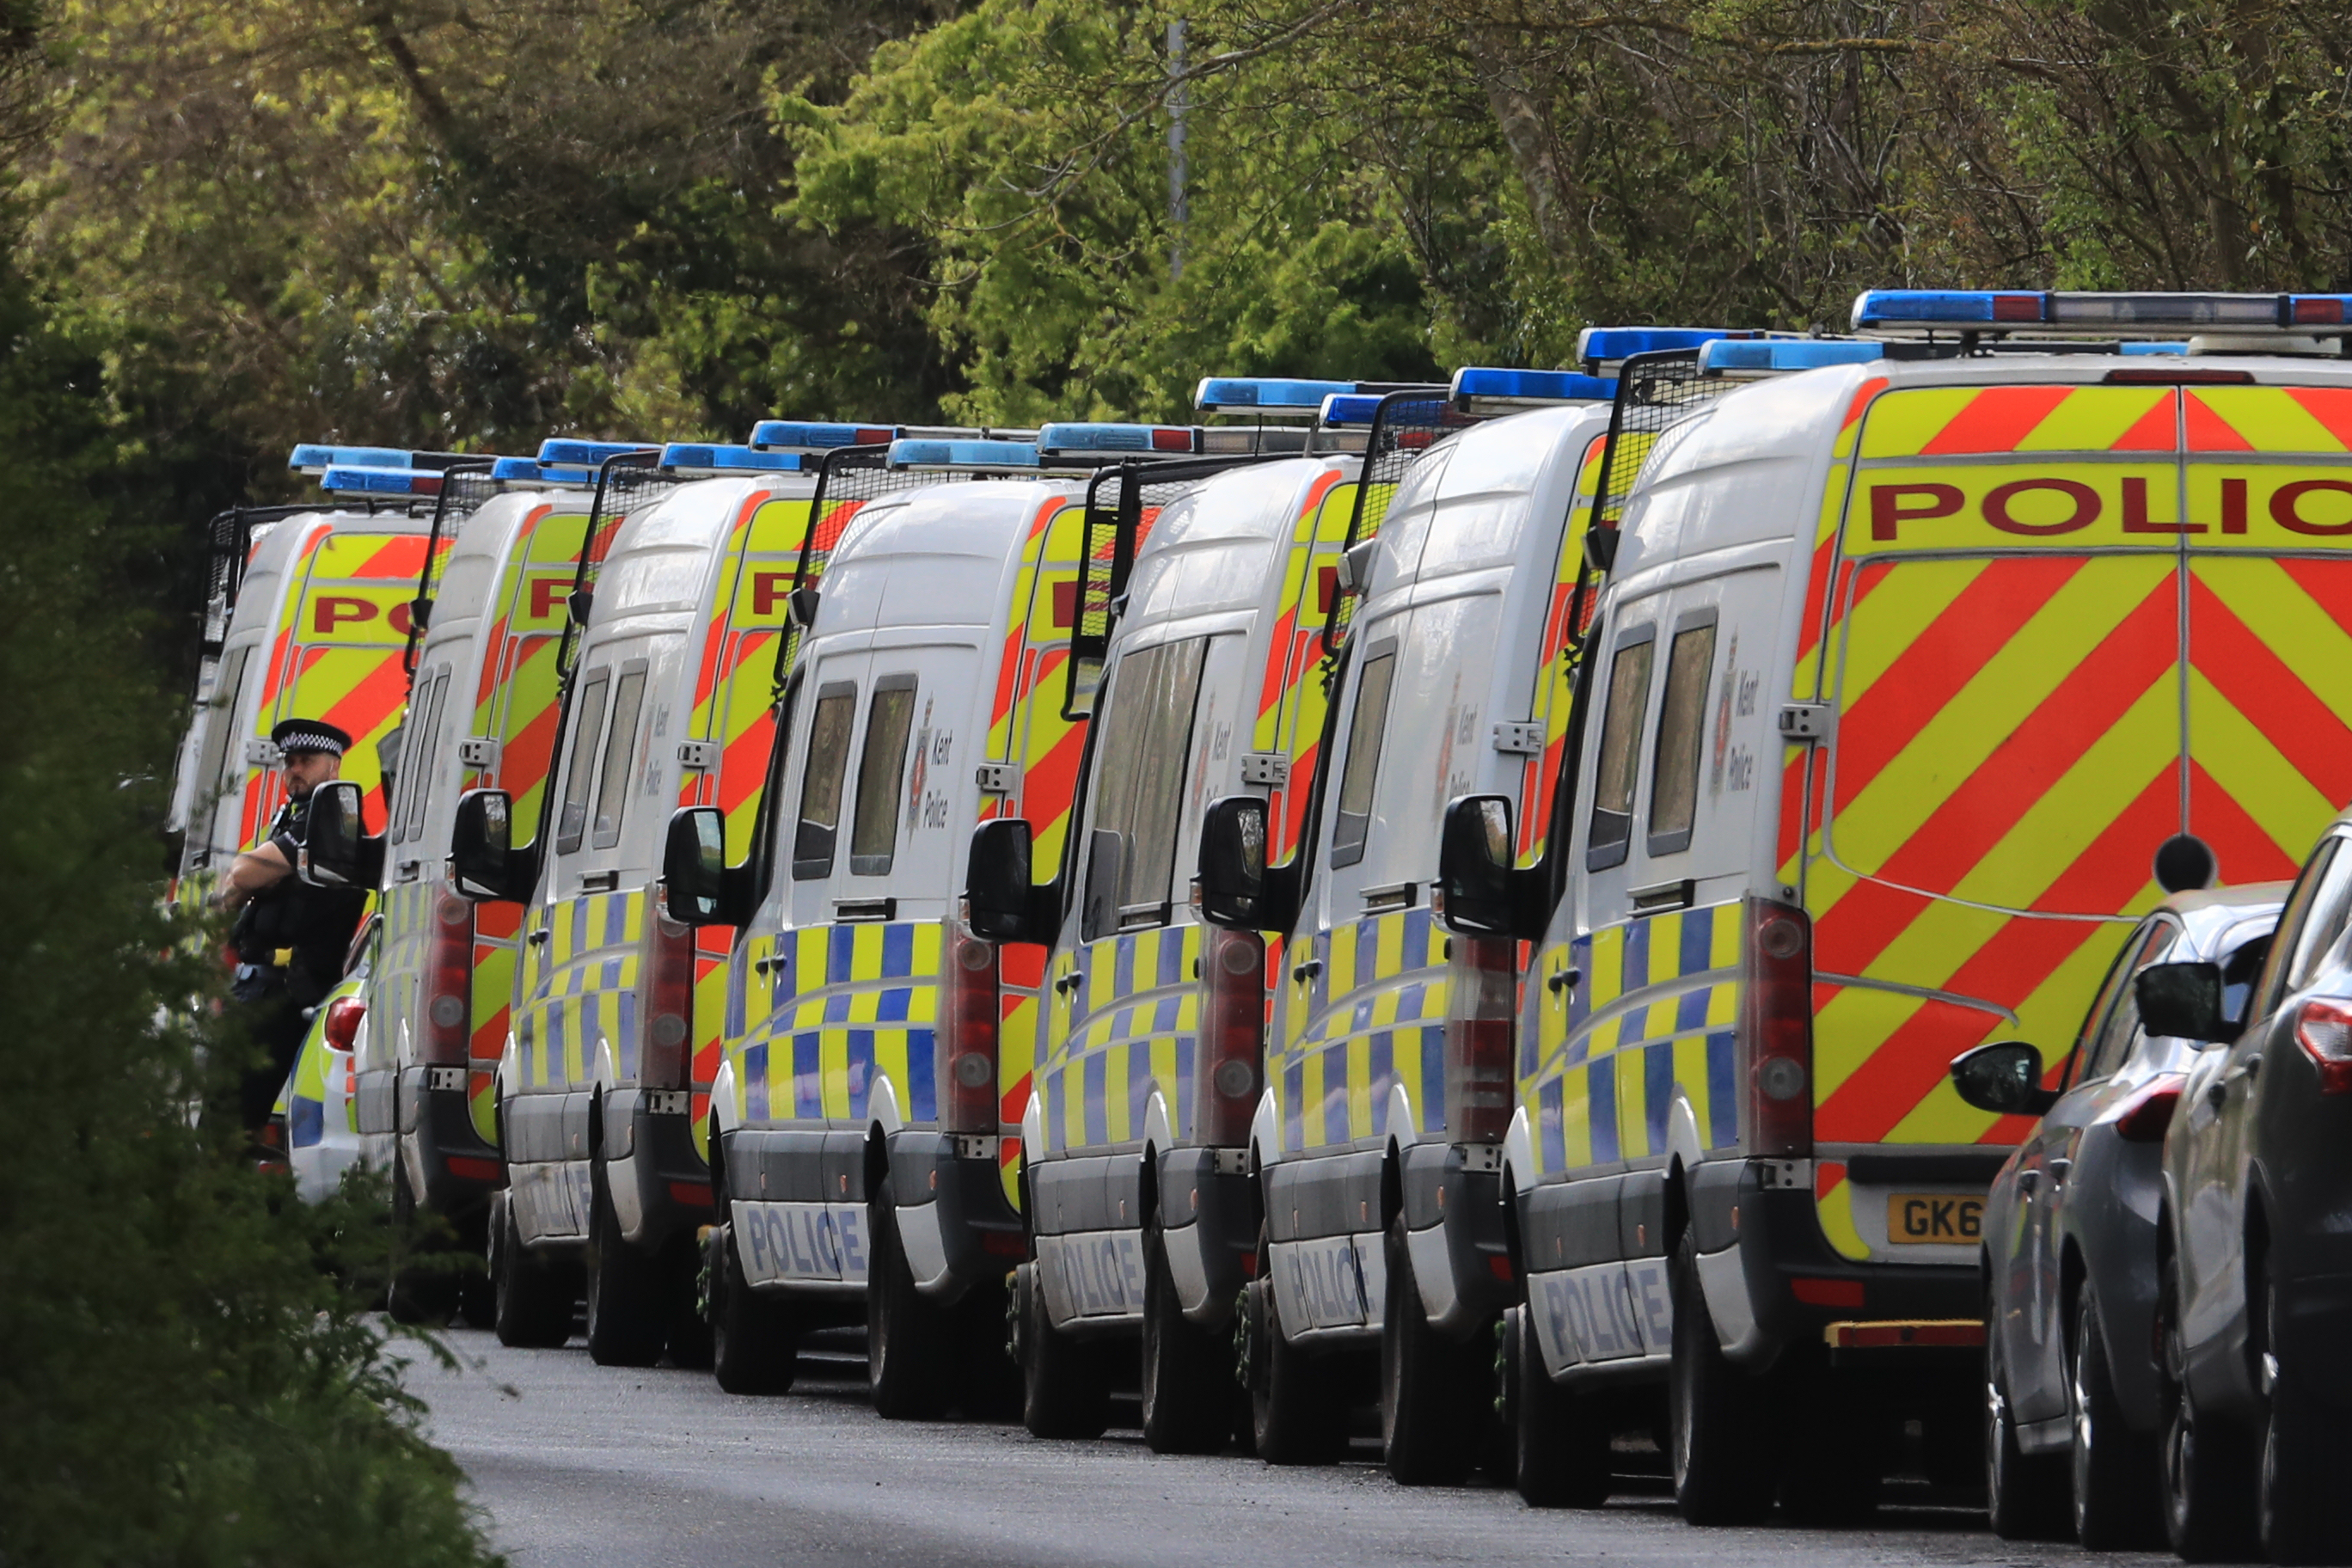 <p>Police vehicles near to the scene in Snowdown, Kent, where the body of PCSO Julia James was found. Kent Police have launched a murder enquiry following the discovery of the 53-year-old community support officer on Tuesday. Picture date: Thursday April 29, 2021.</p>